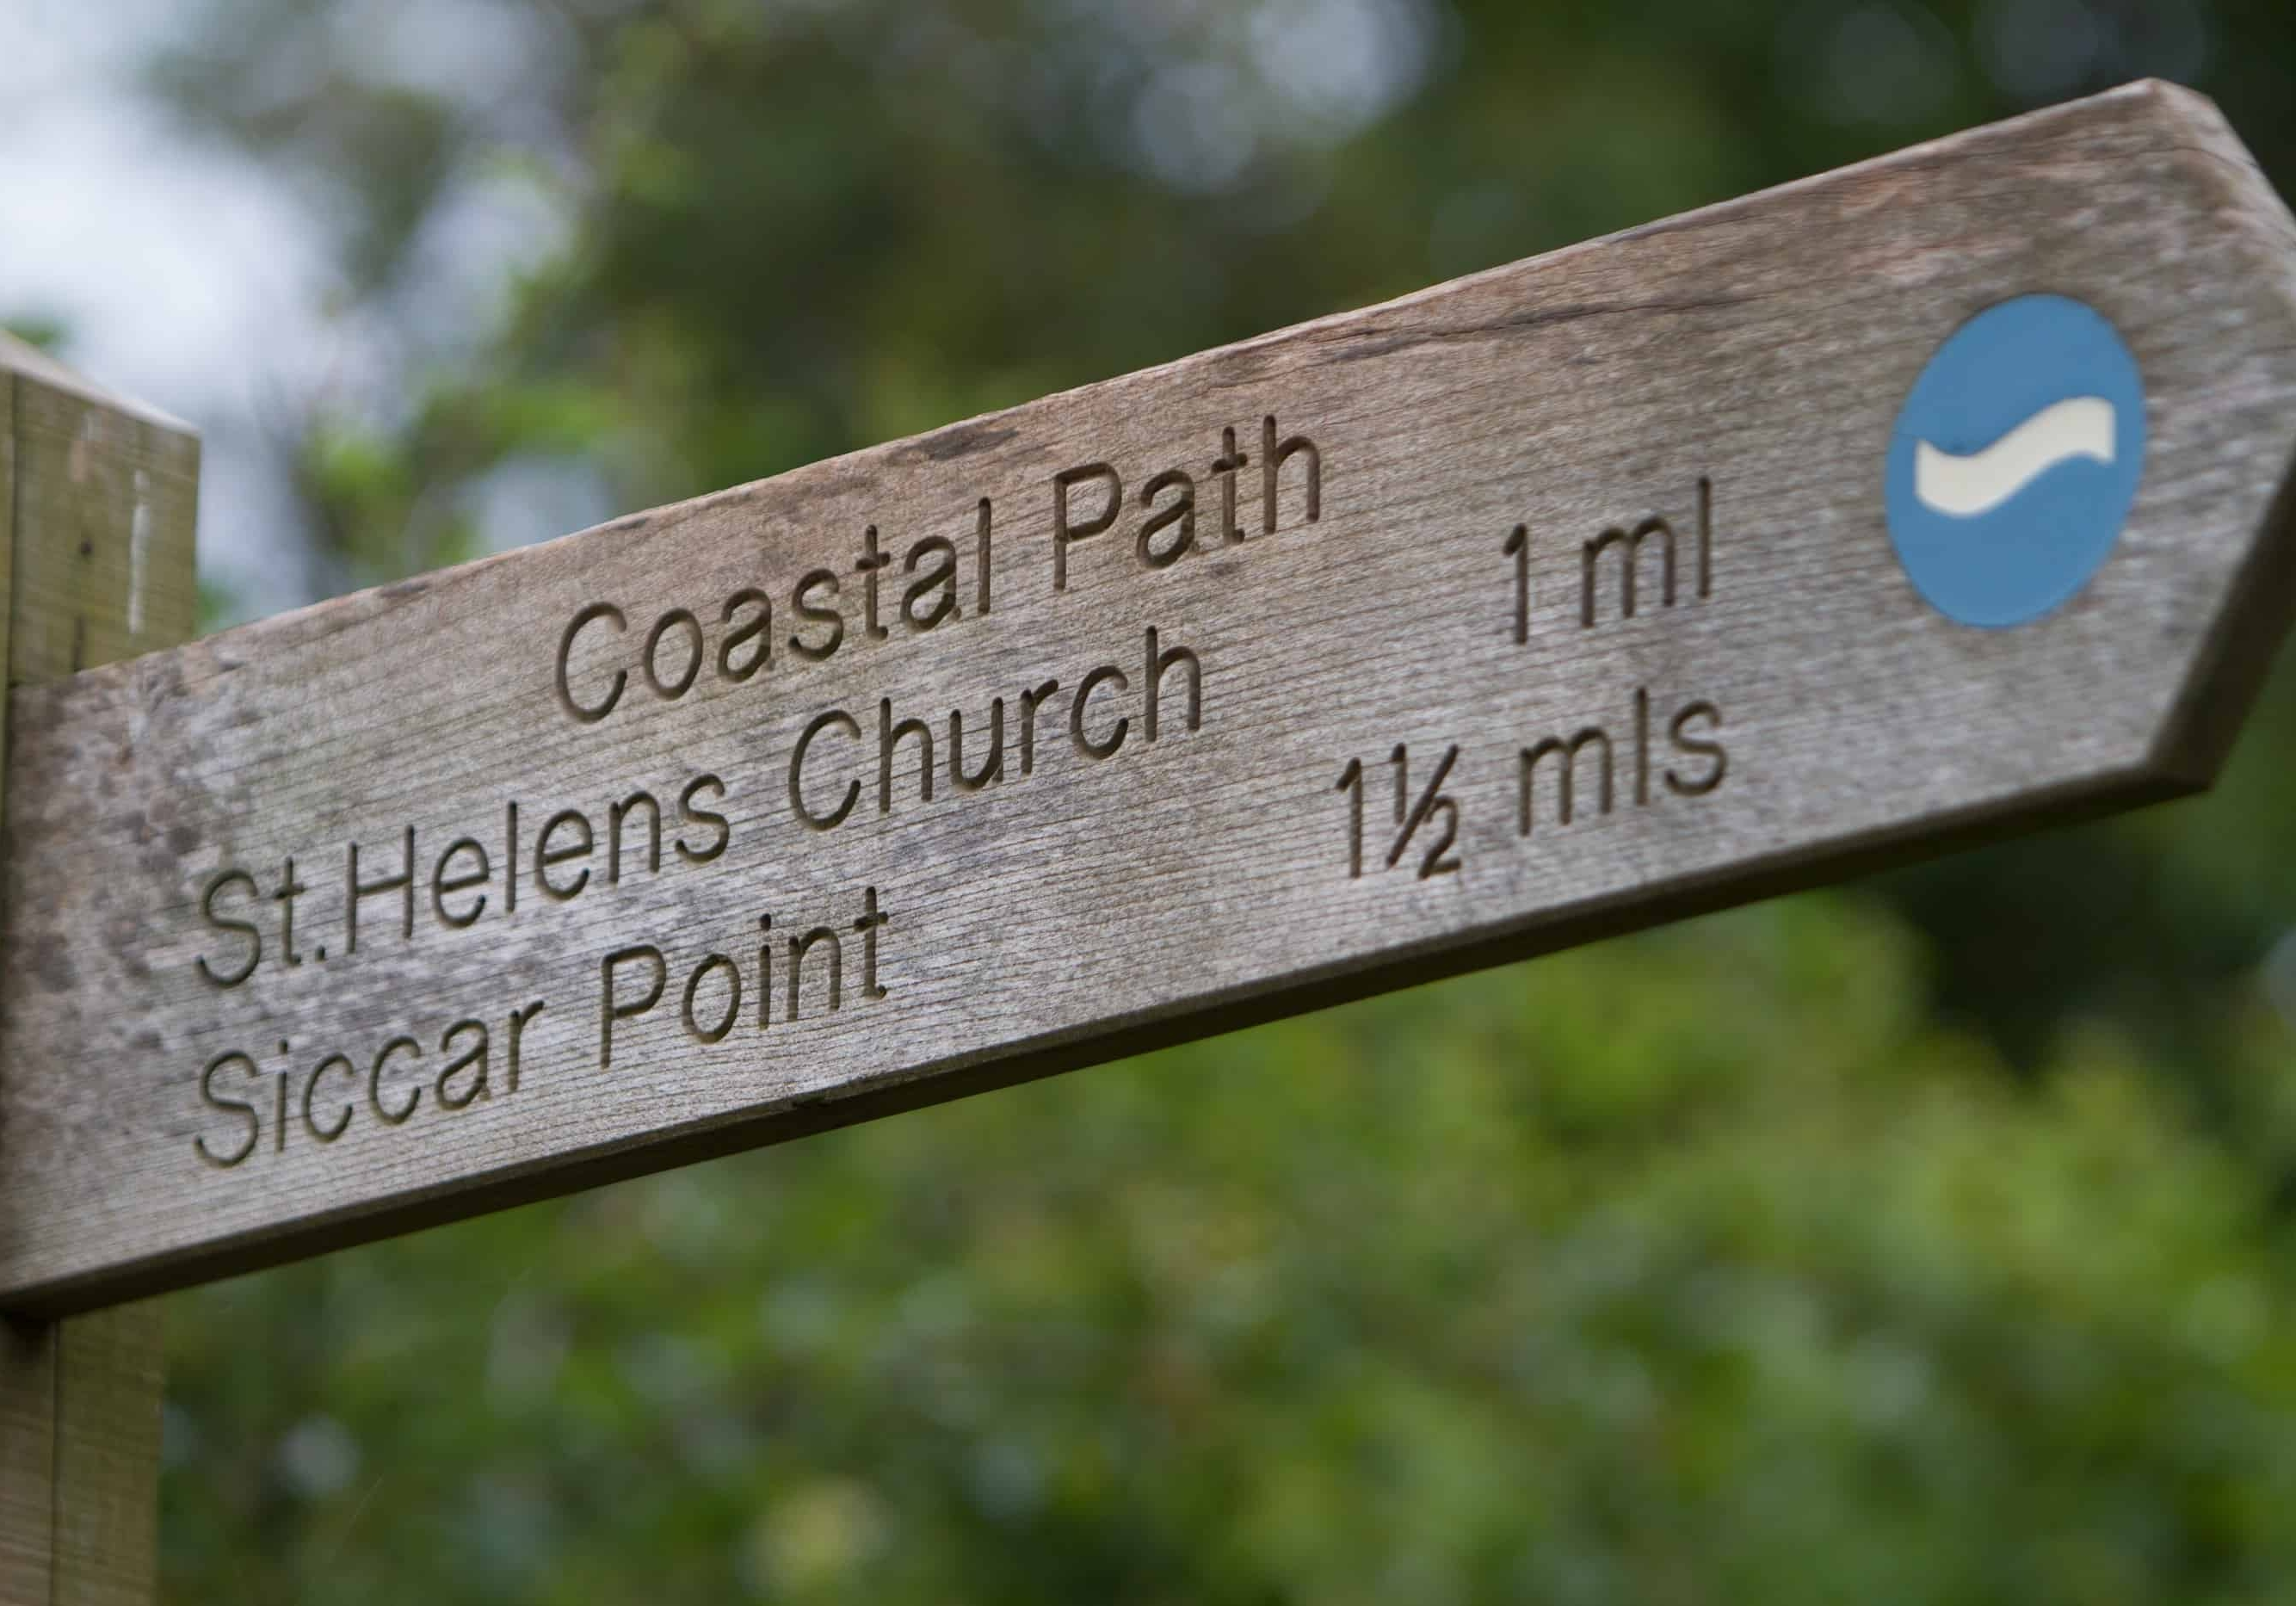 With its breath-taking scenery, the Berwickshire Coastal Path is not one to be missed.